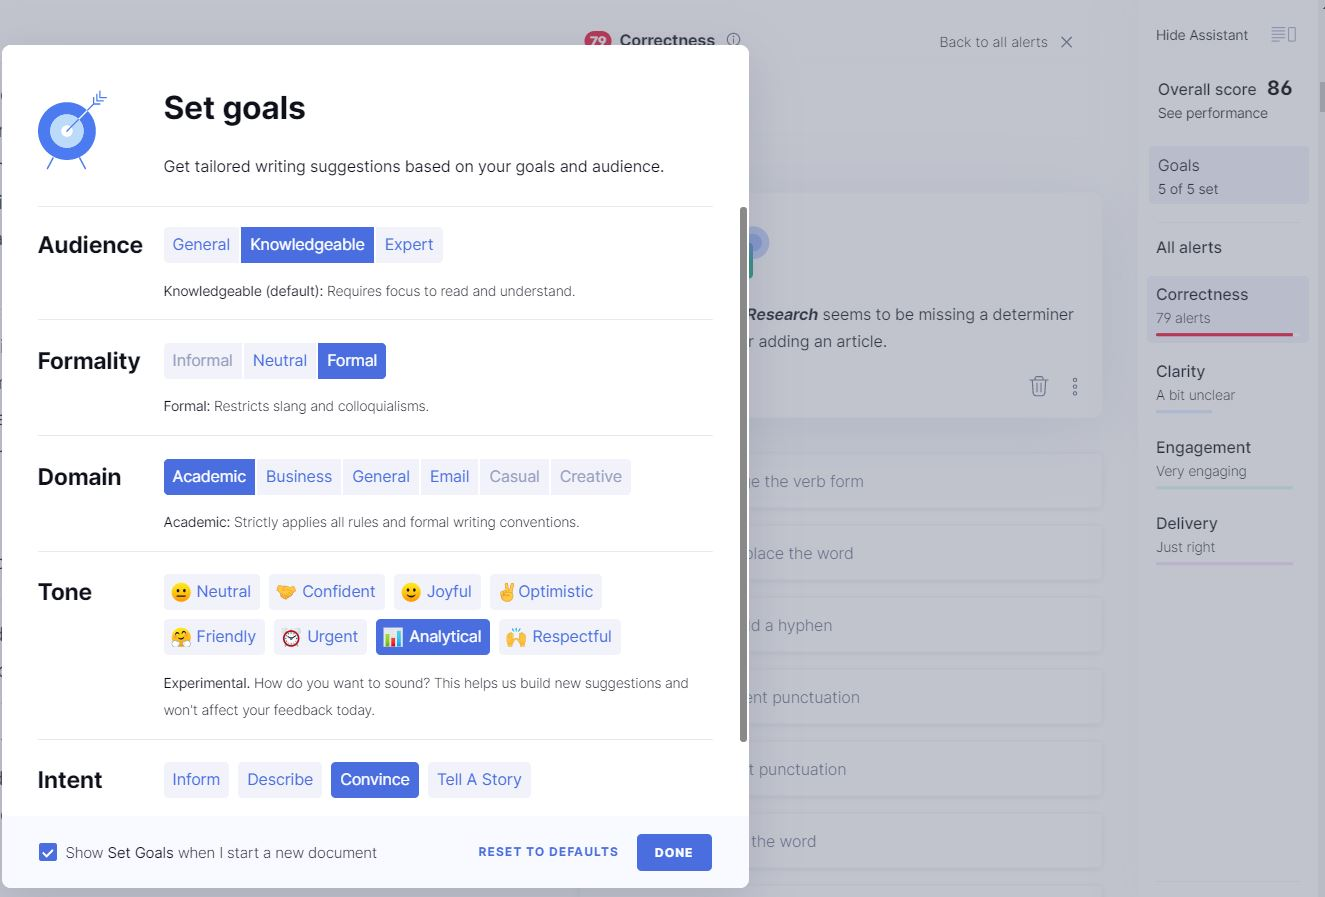 set goals screen in Grammarly with selections for audience, formality, domain, tone, intent